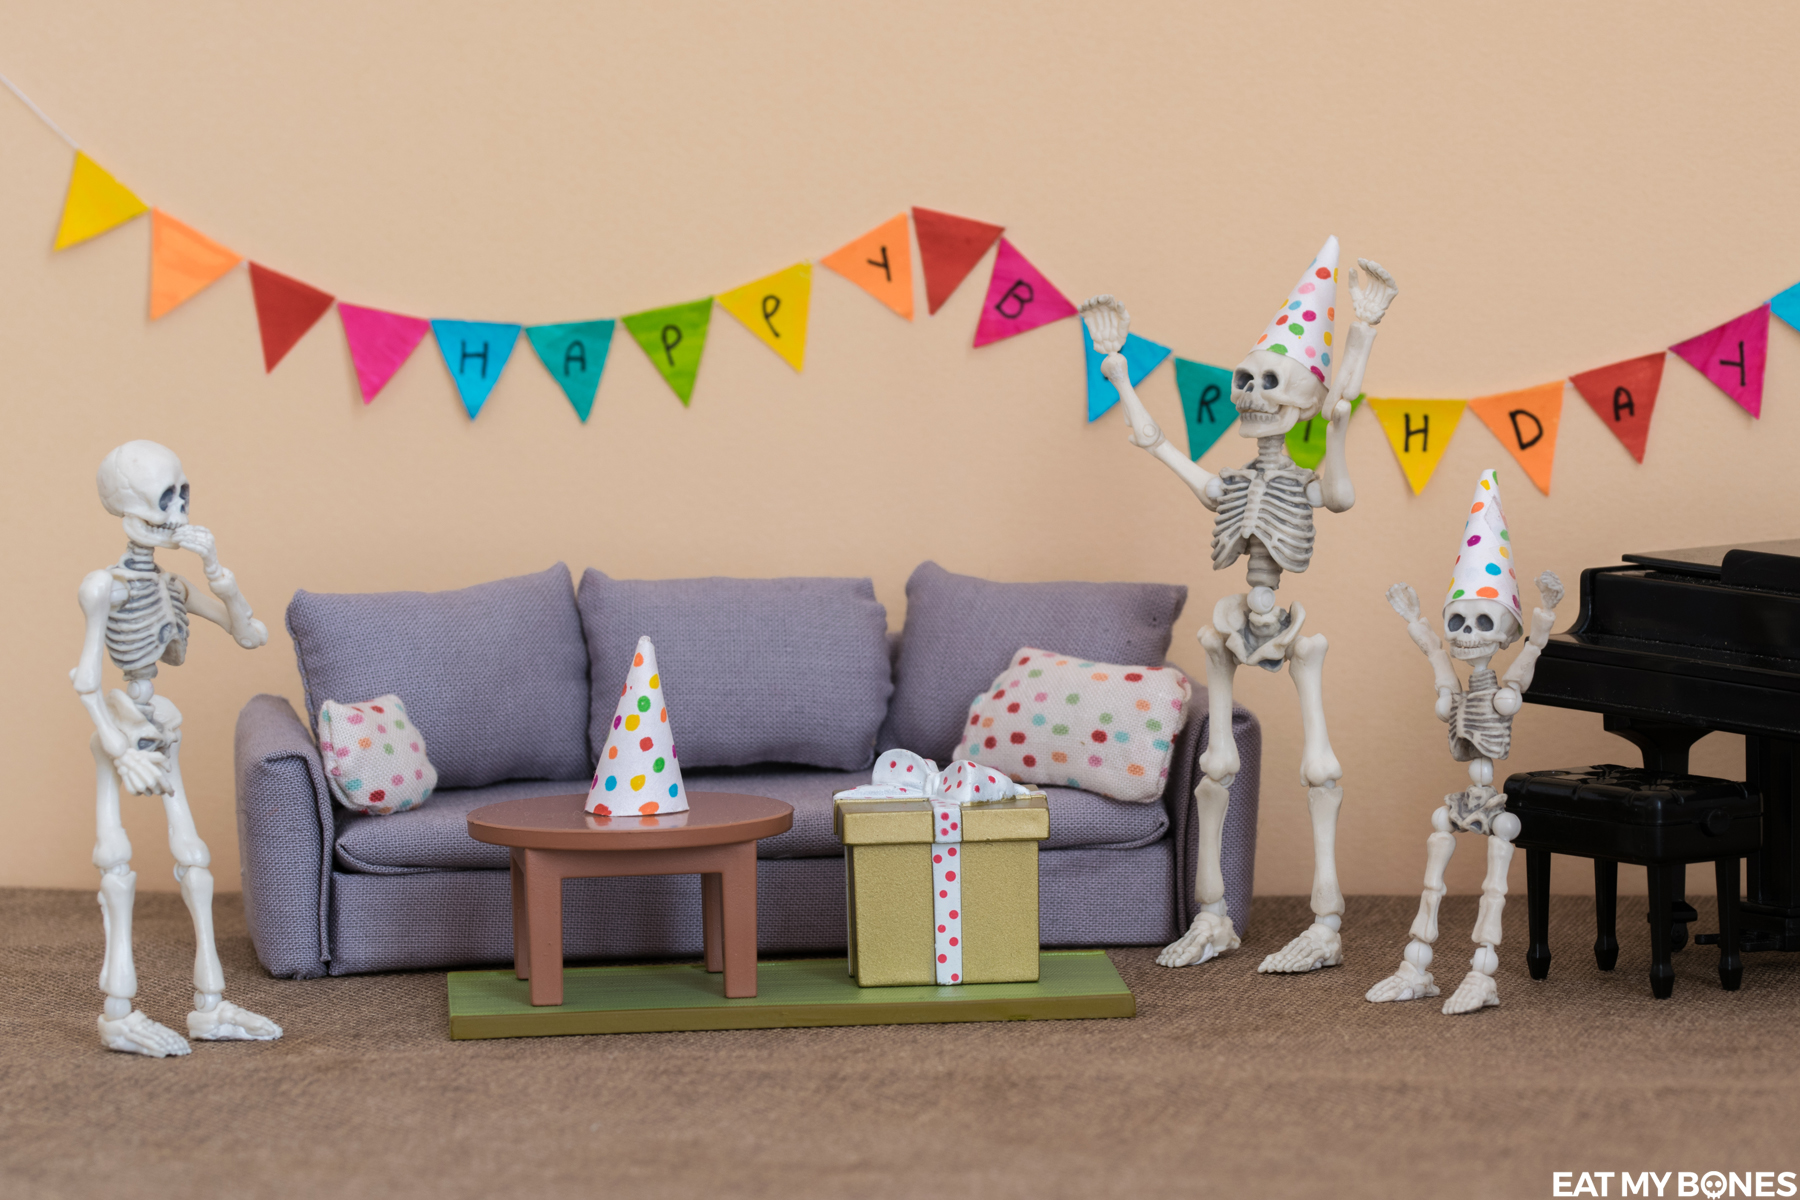 Rebecca's birthday party - Pose Skeleton - Toy photography - Miniature - Eat my Bones